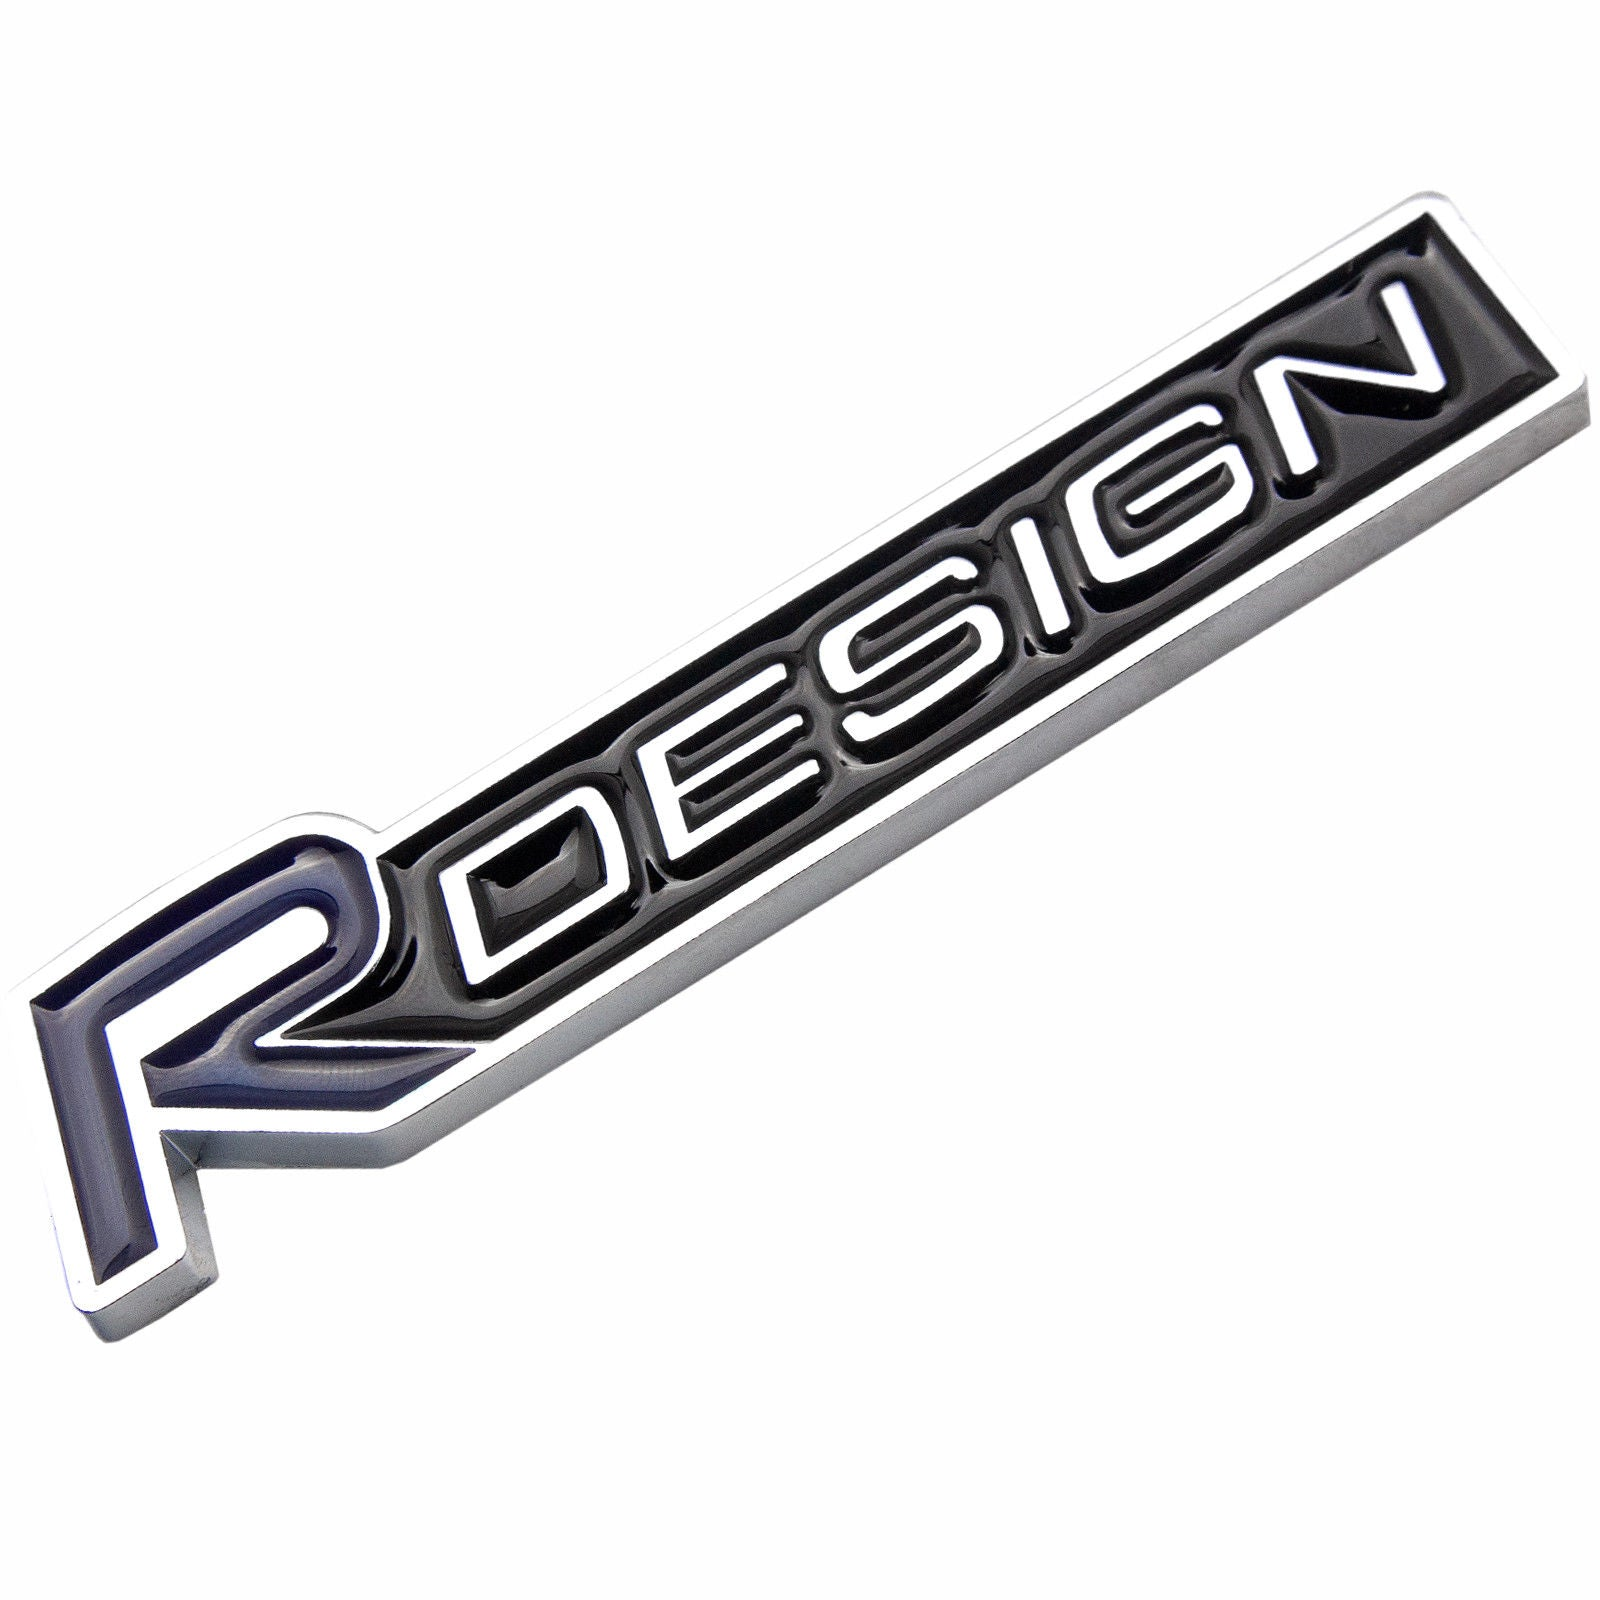 Silver/Black Metal R-Design Letter Emblem Trunk Lid Side